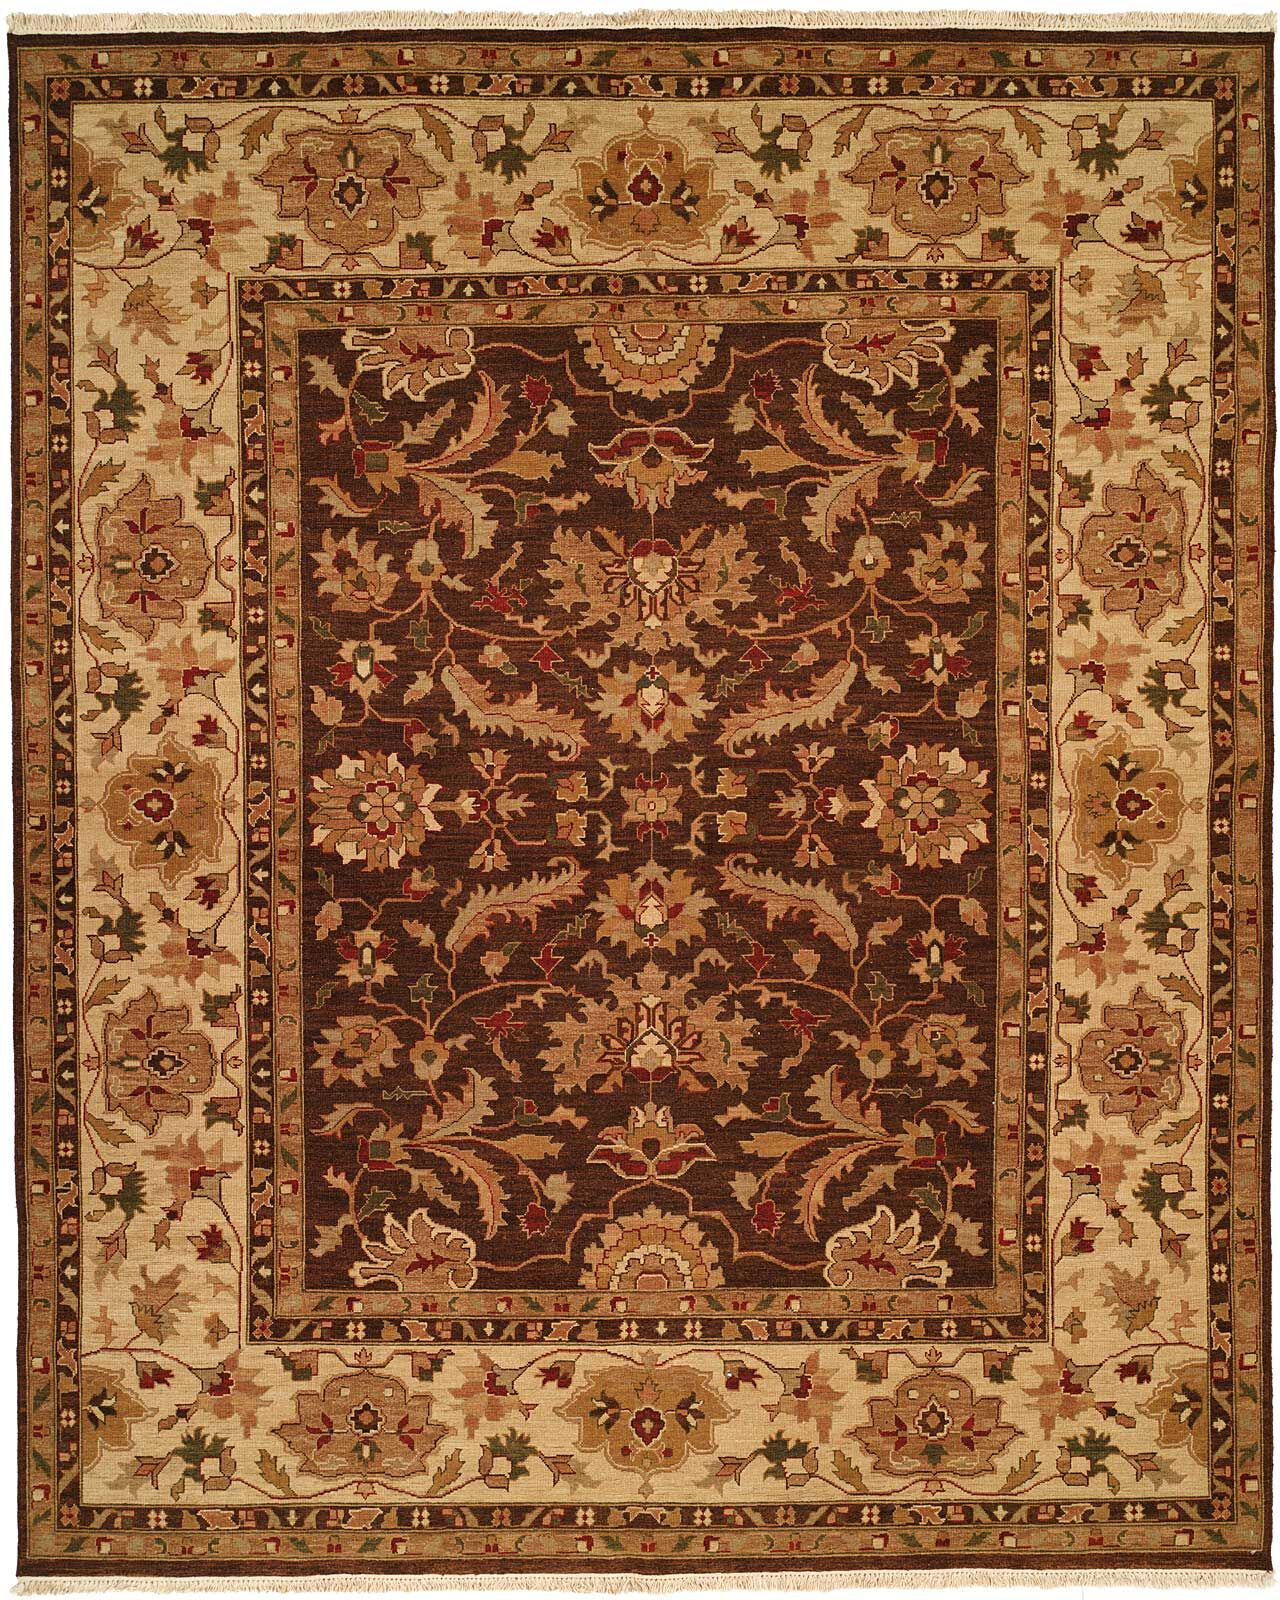 Tianjin Hand-Woven Brown/Beige Area Rug Rug Size: Rectangle 6' x 9'